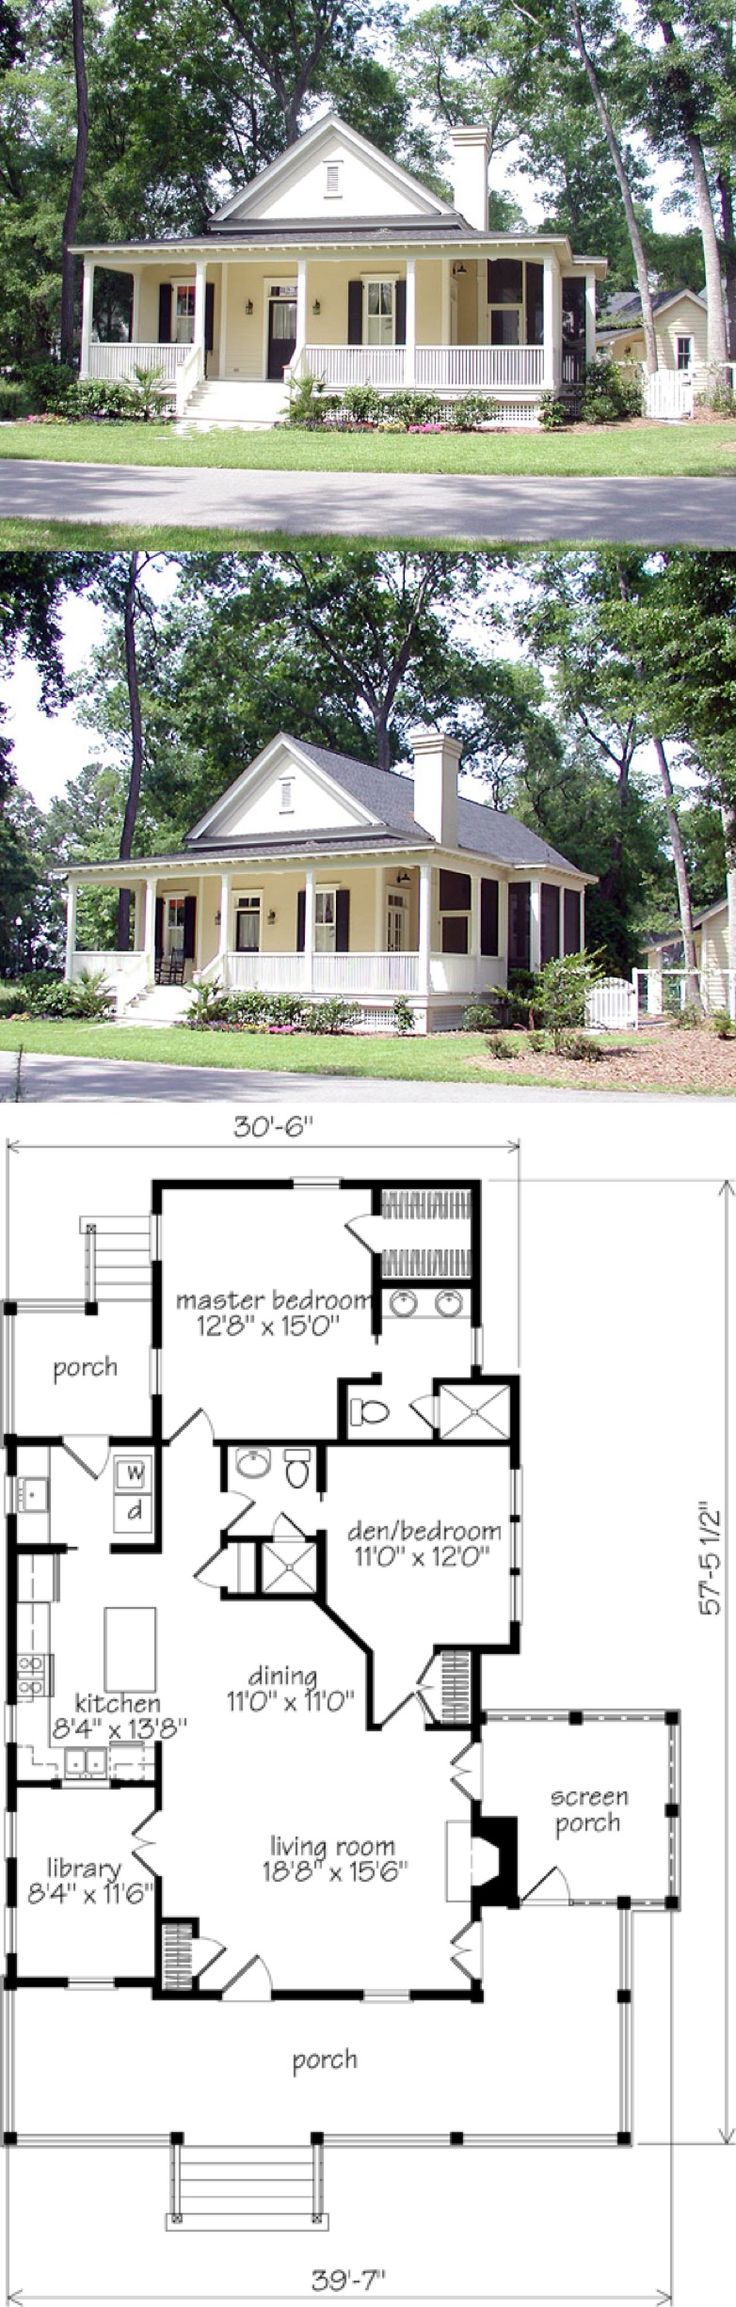 Banning Court 2 2 1286 Sq Ft House Small Spaces Efficient Living Pinterest Farmhouse